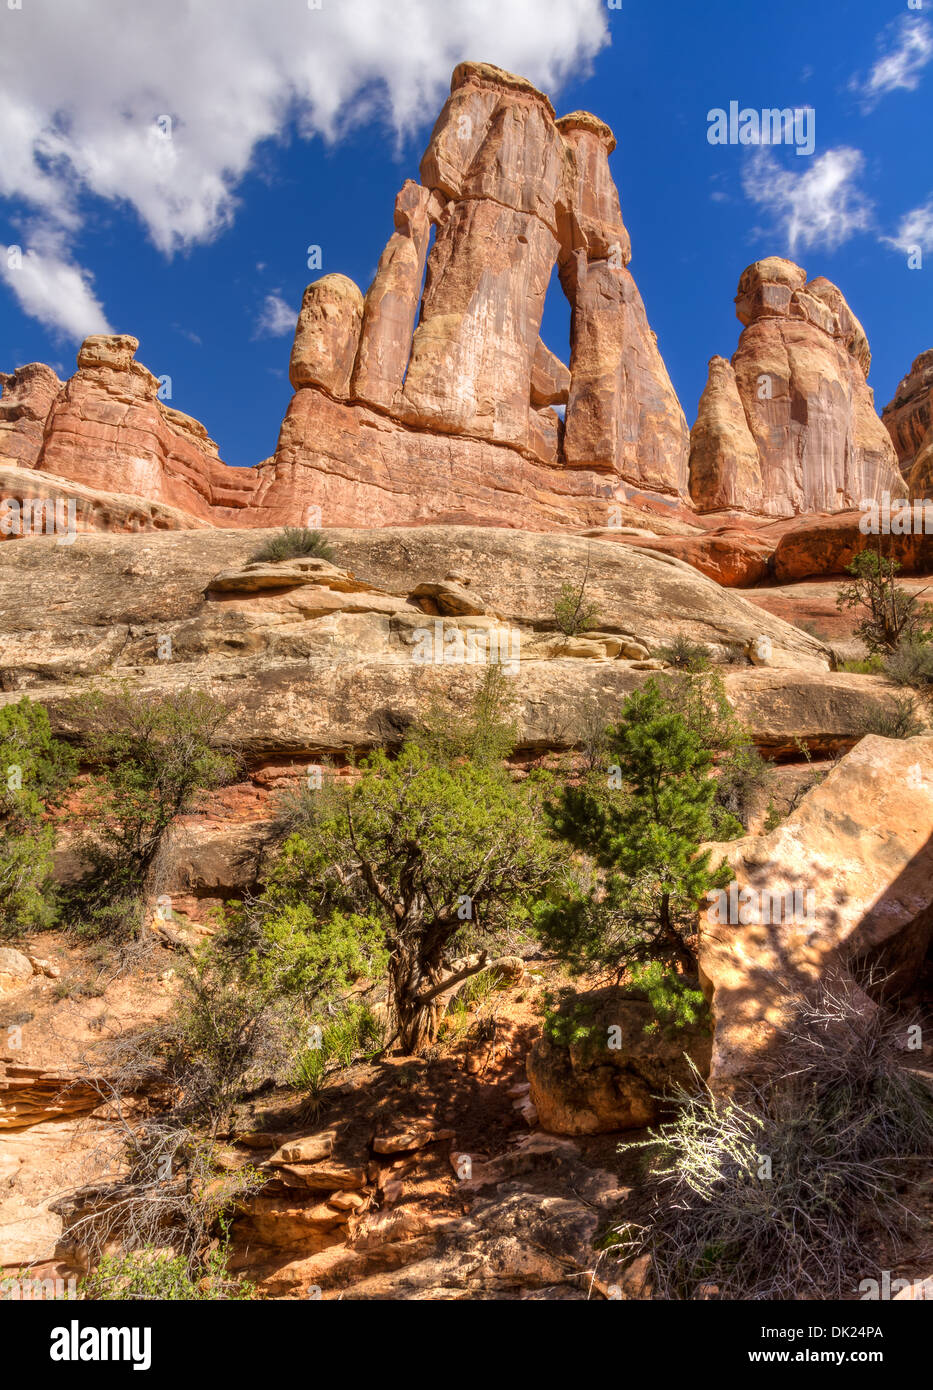 Iconic Druid Arch with juniper bushes in Elephant Canyon in the Needles District of Canyonlands National Park, Utah - Stock Image